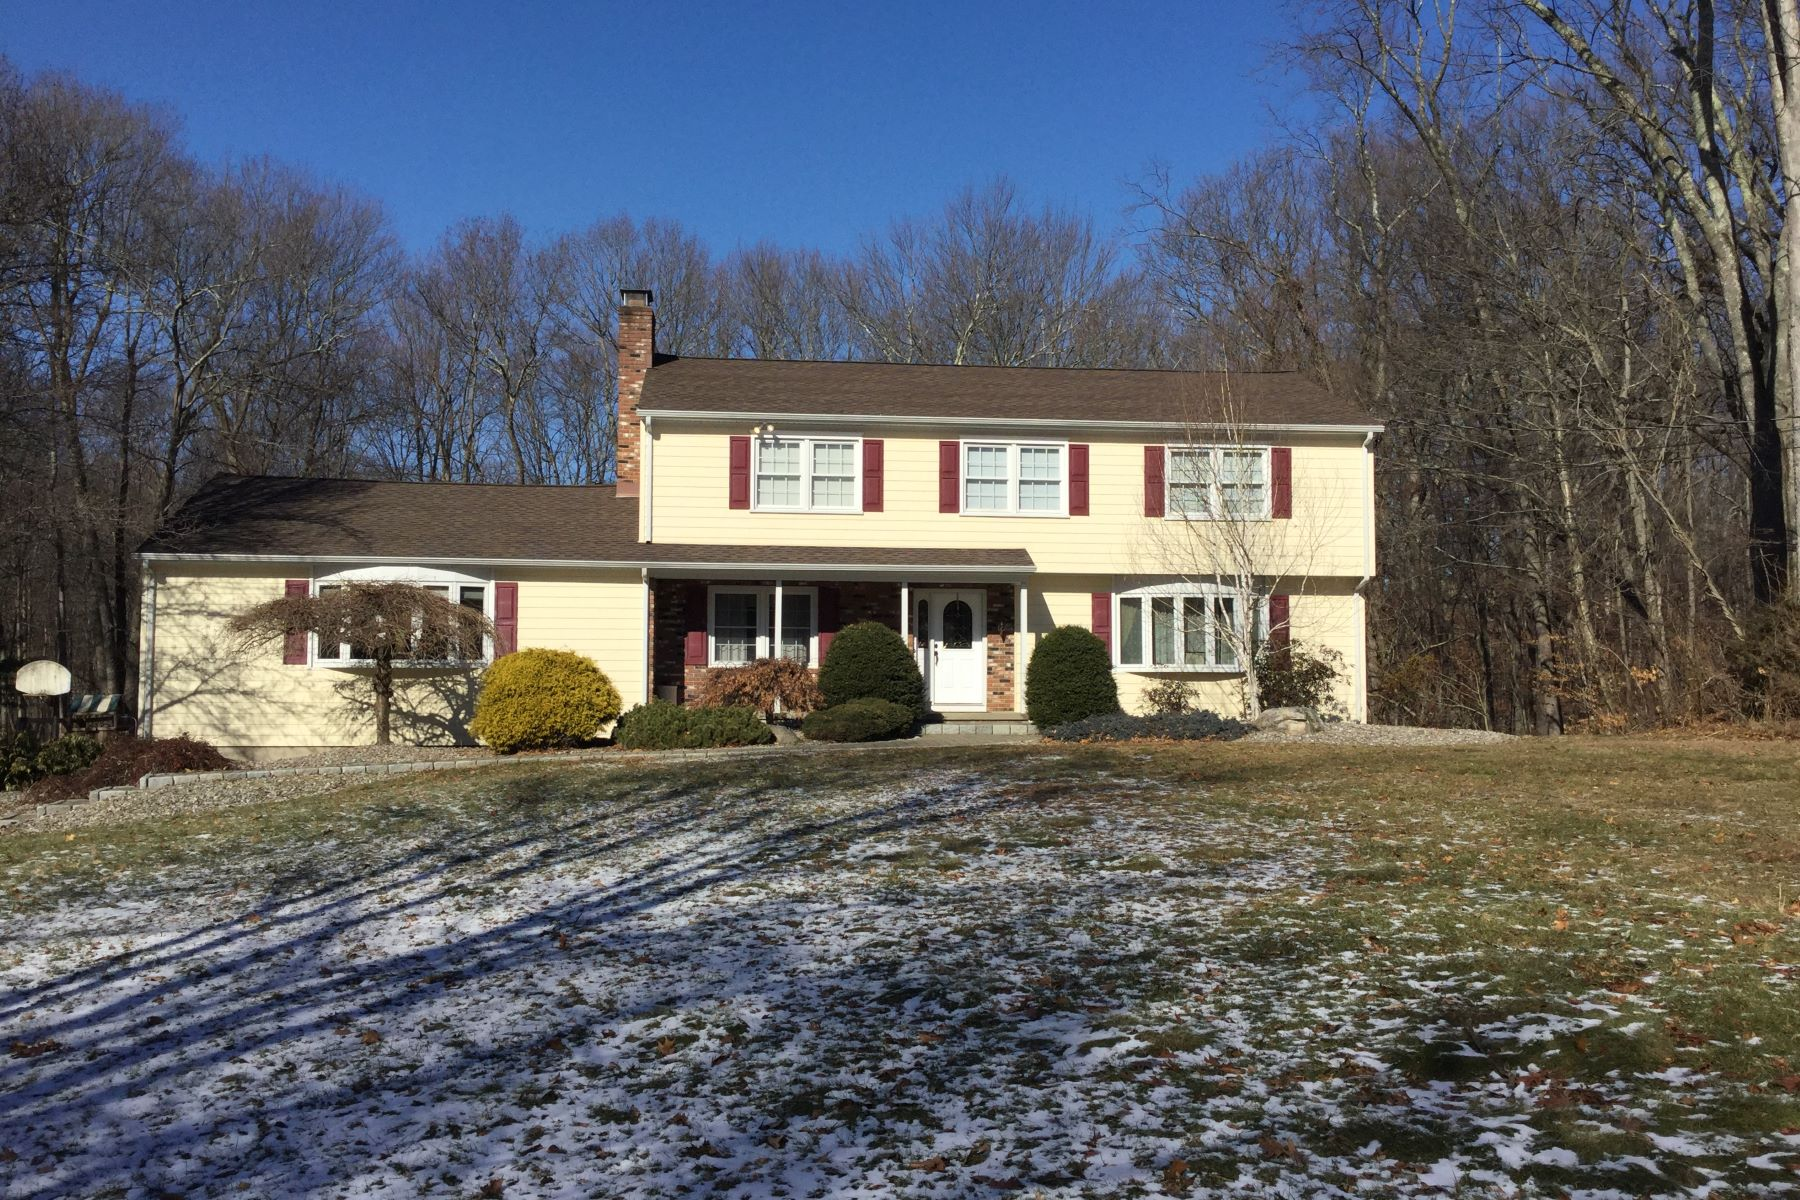 Single Family Home for Sale at Beautifully situated on 1 acre on a quiet Cul-de-sac 20 Mistywood Lane, Trumbull, Connecticut, 06611 United States